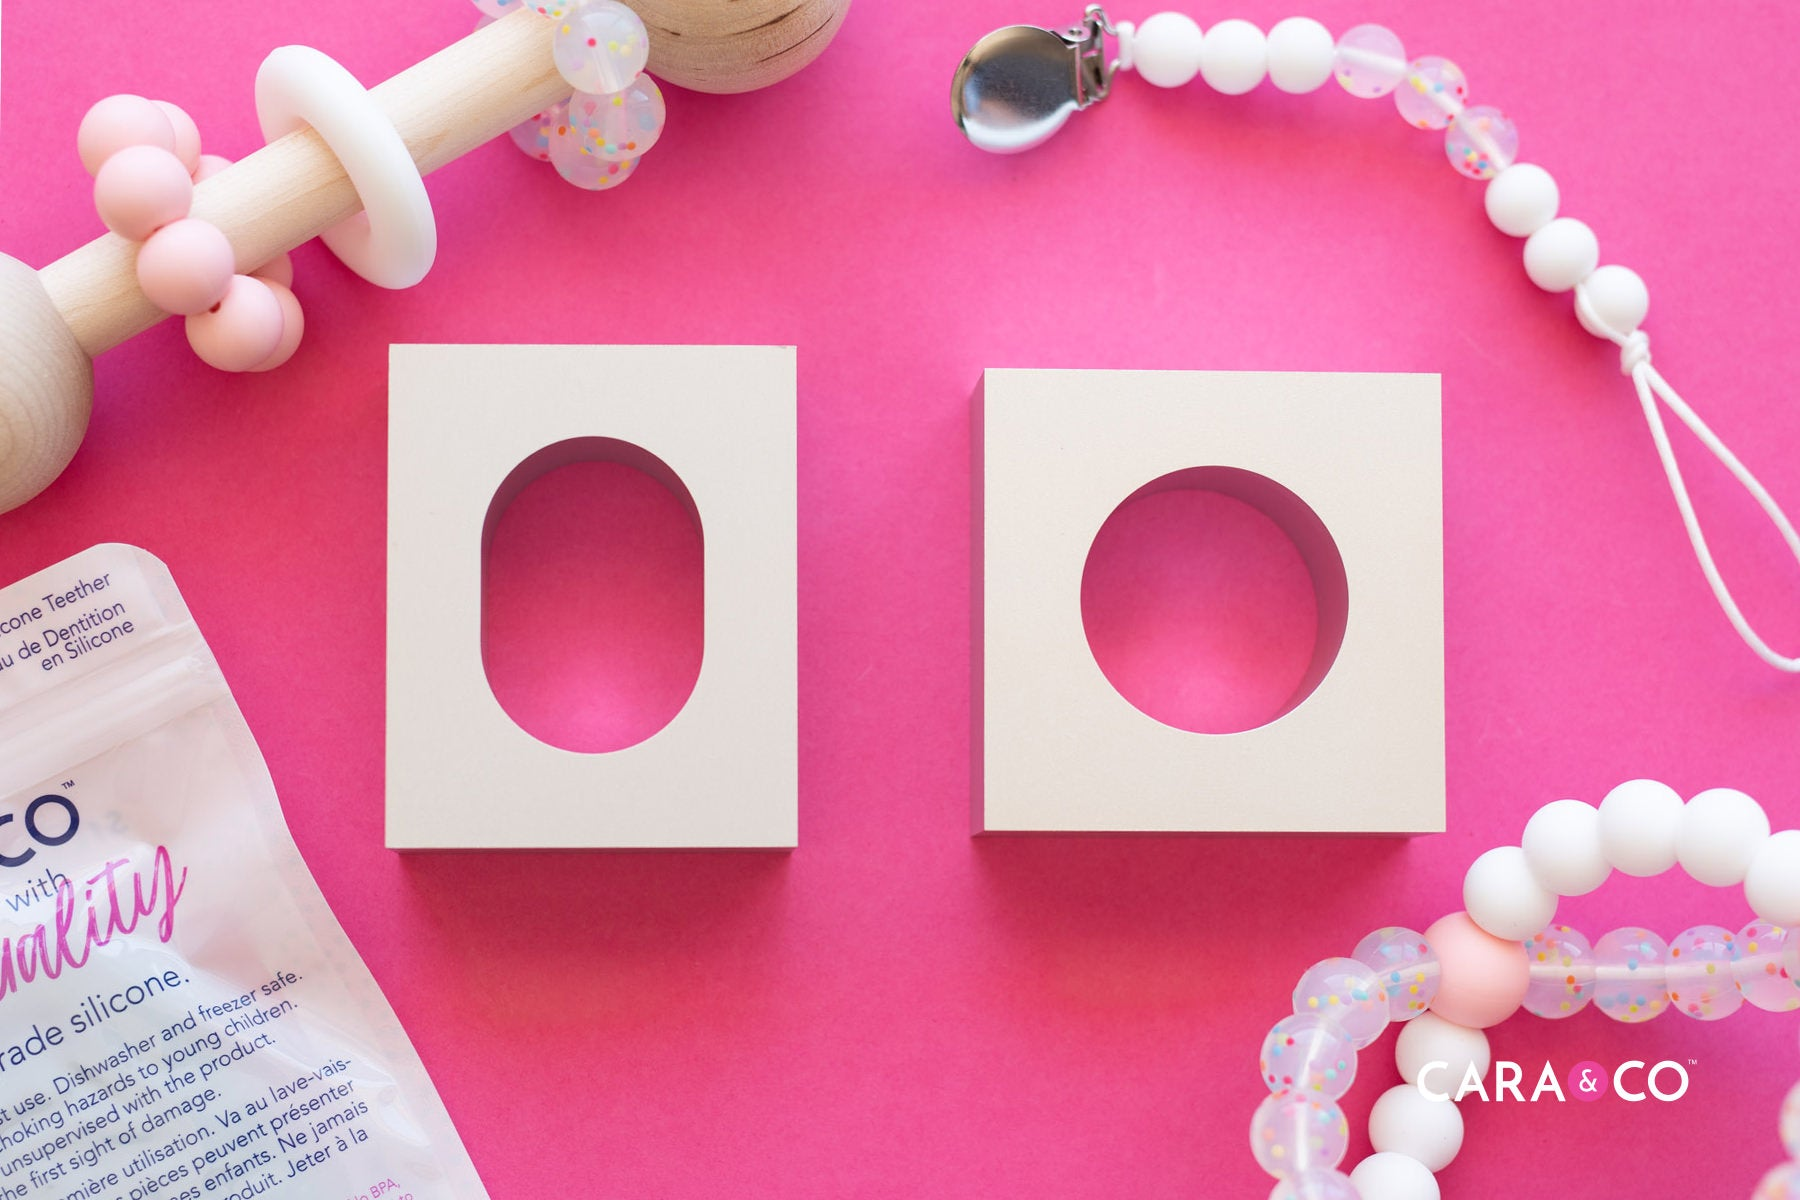 Safety e-book for your crafting / teething business  - Cara & Co